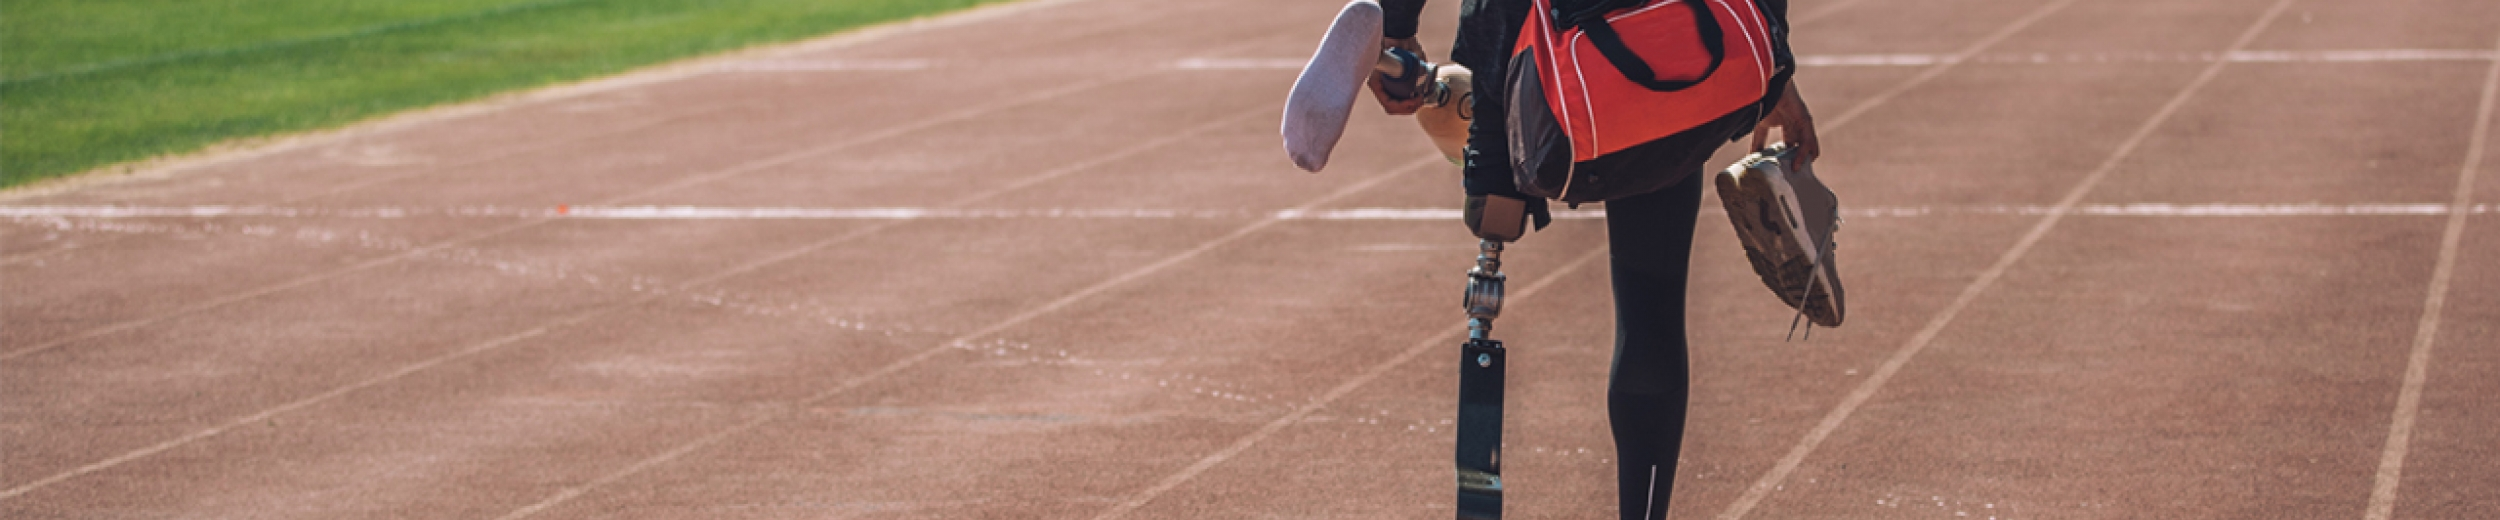 Athlete wearing a running blade carrying their prosthetic